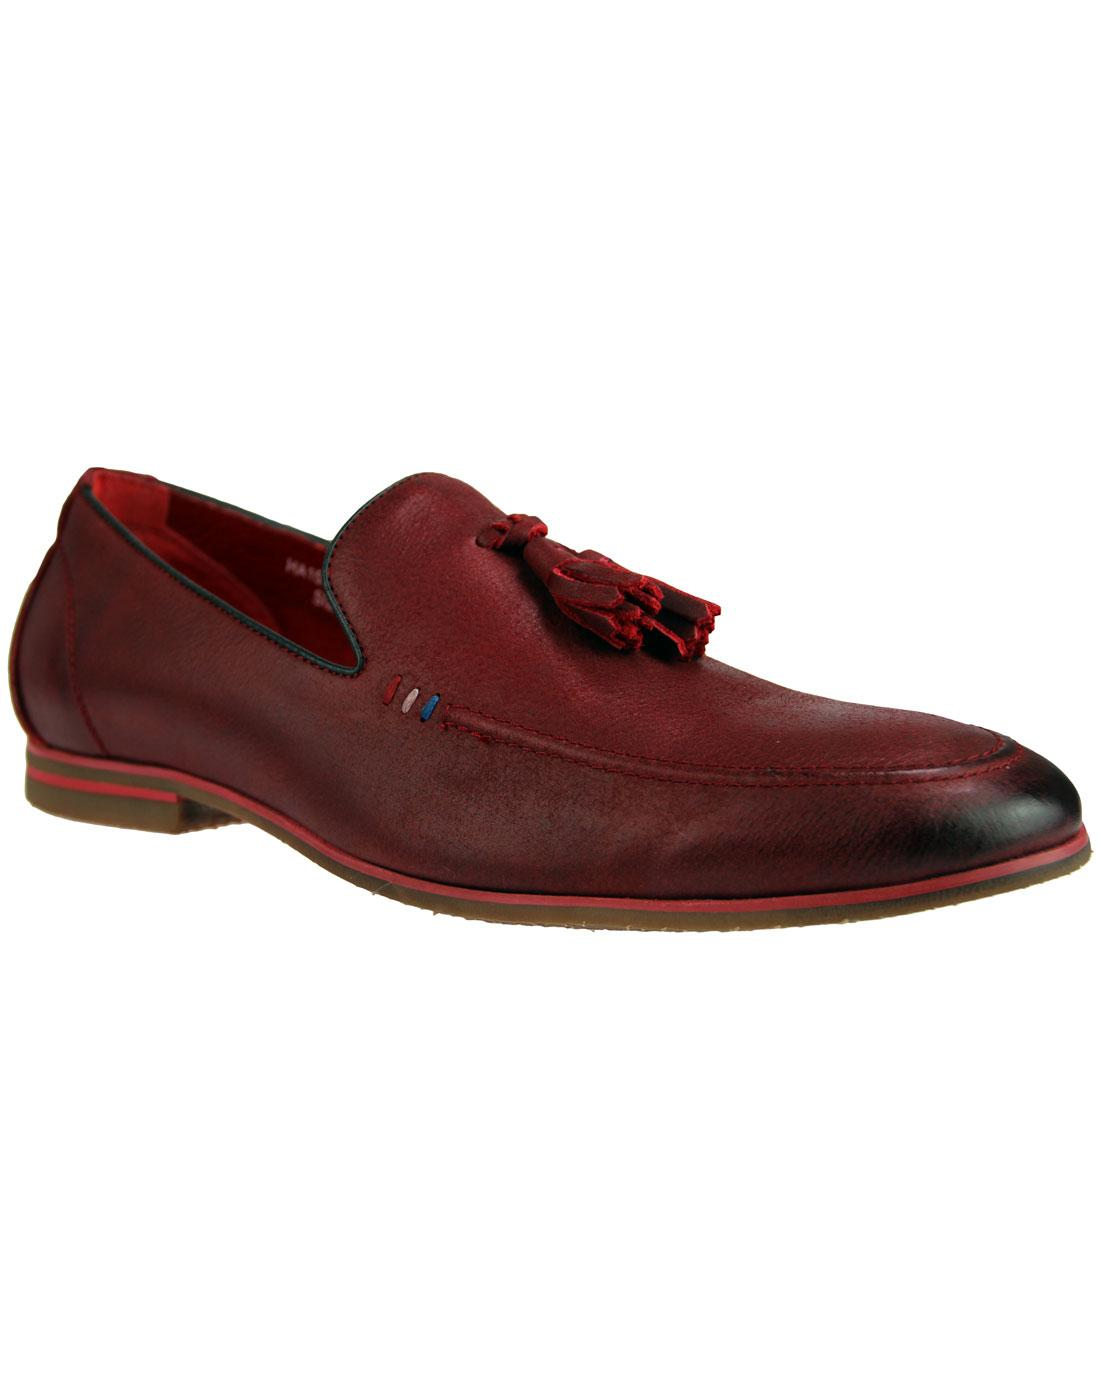 Rene SERGIO DULETTI Leather Tassel loafers WINE